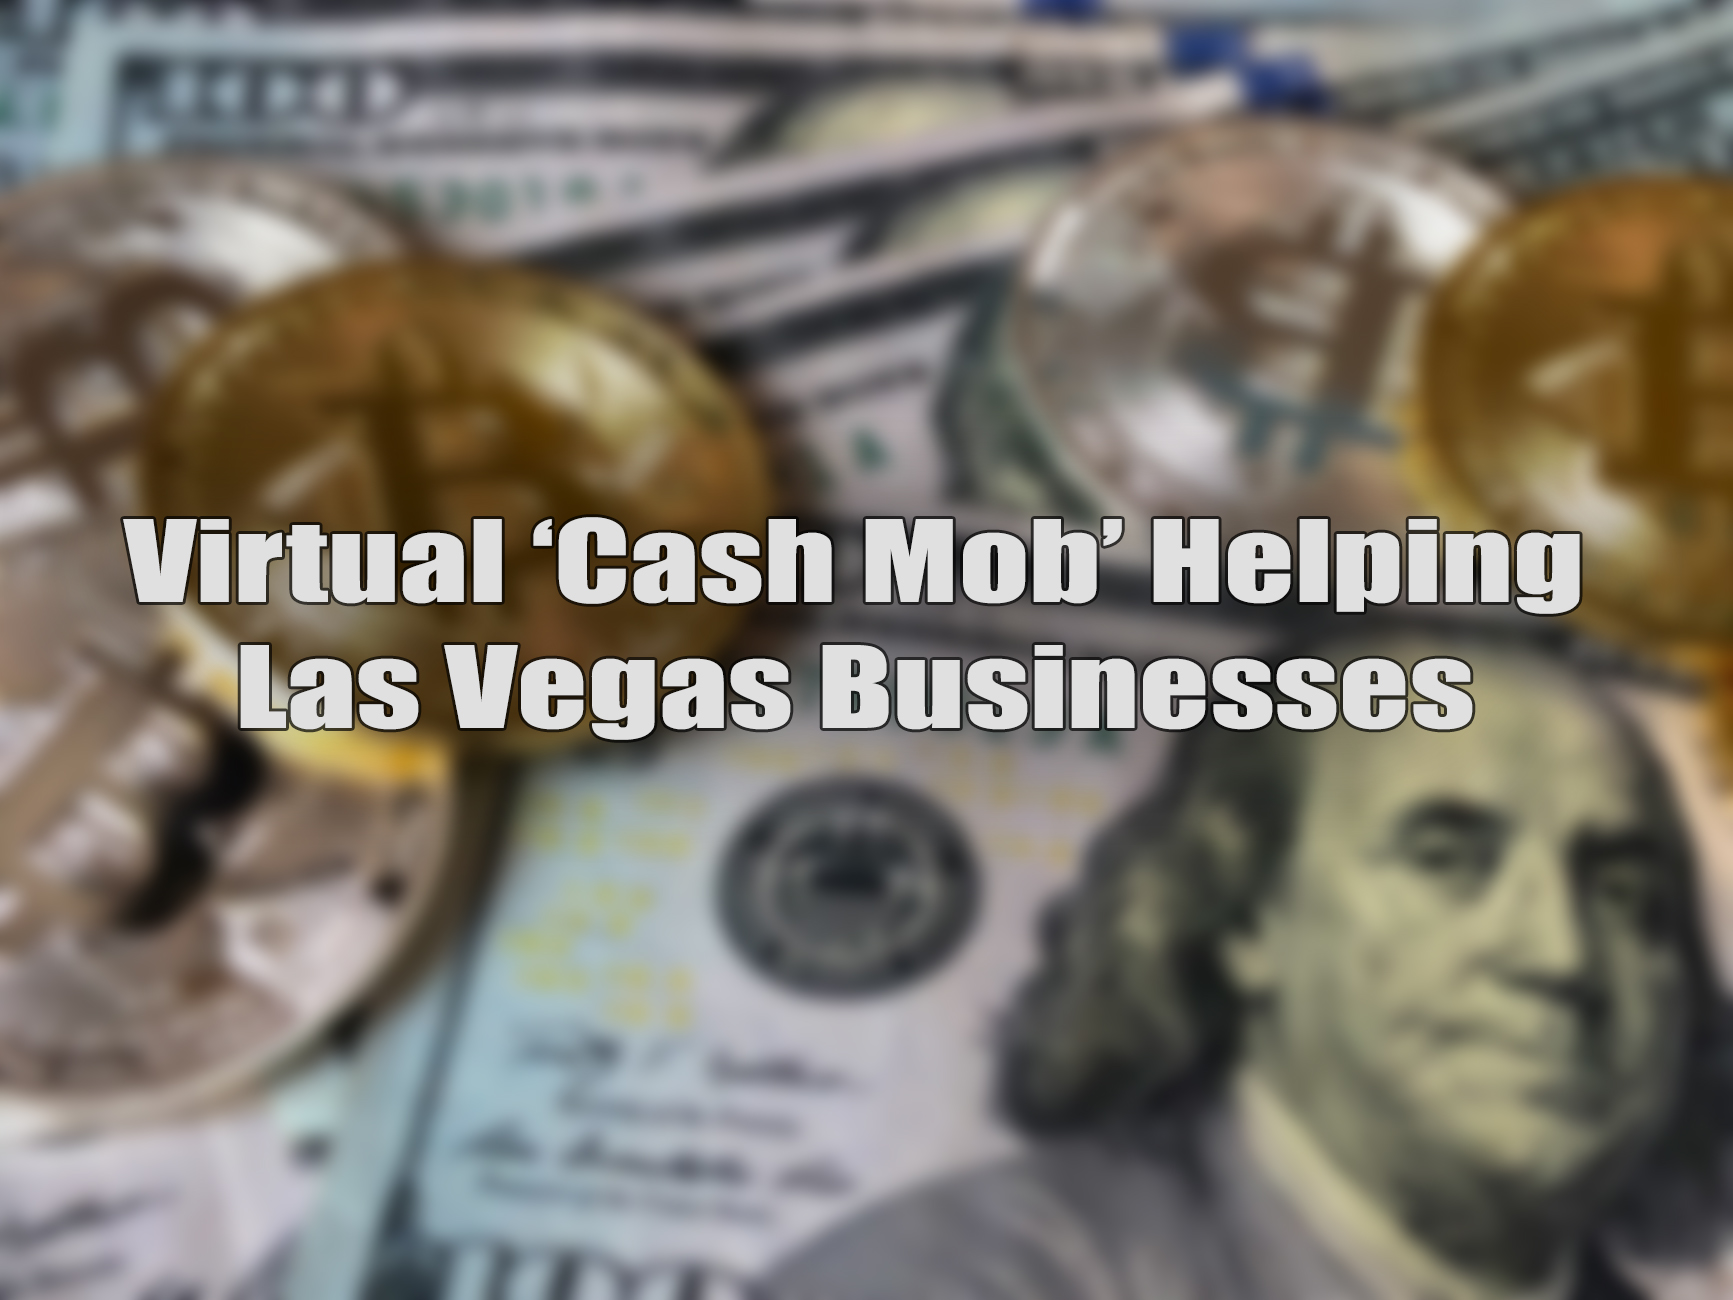 Cash Mob in Las Vegas.jpg